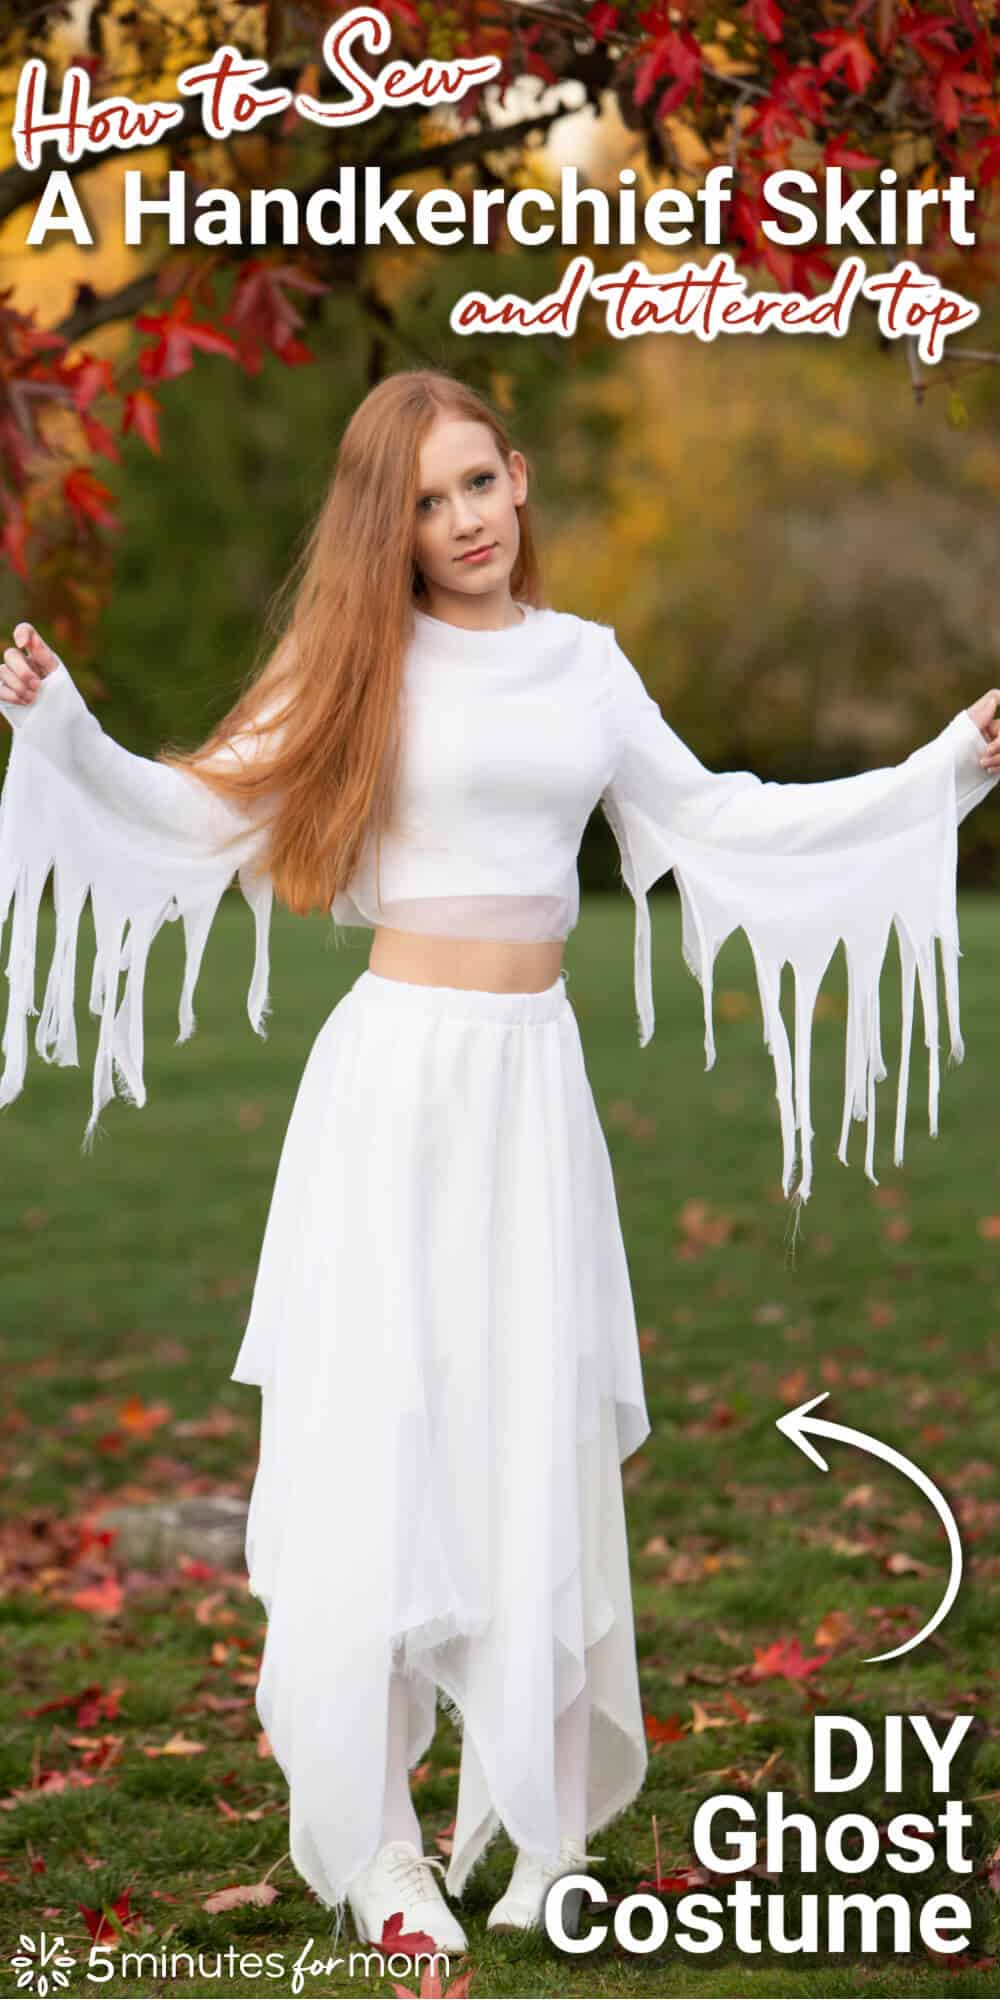 How To Make A Handkerchief Skirt And Top – Ghost Costume Tutorial